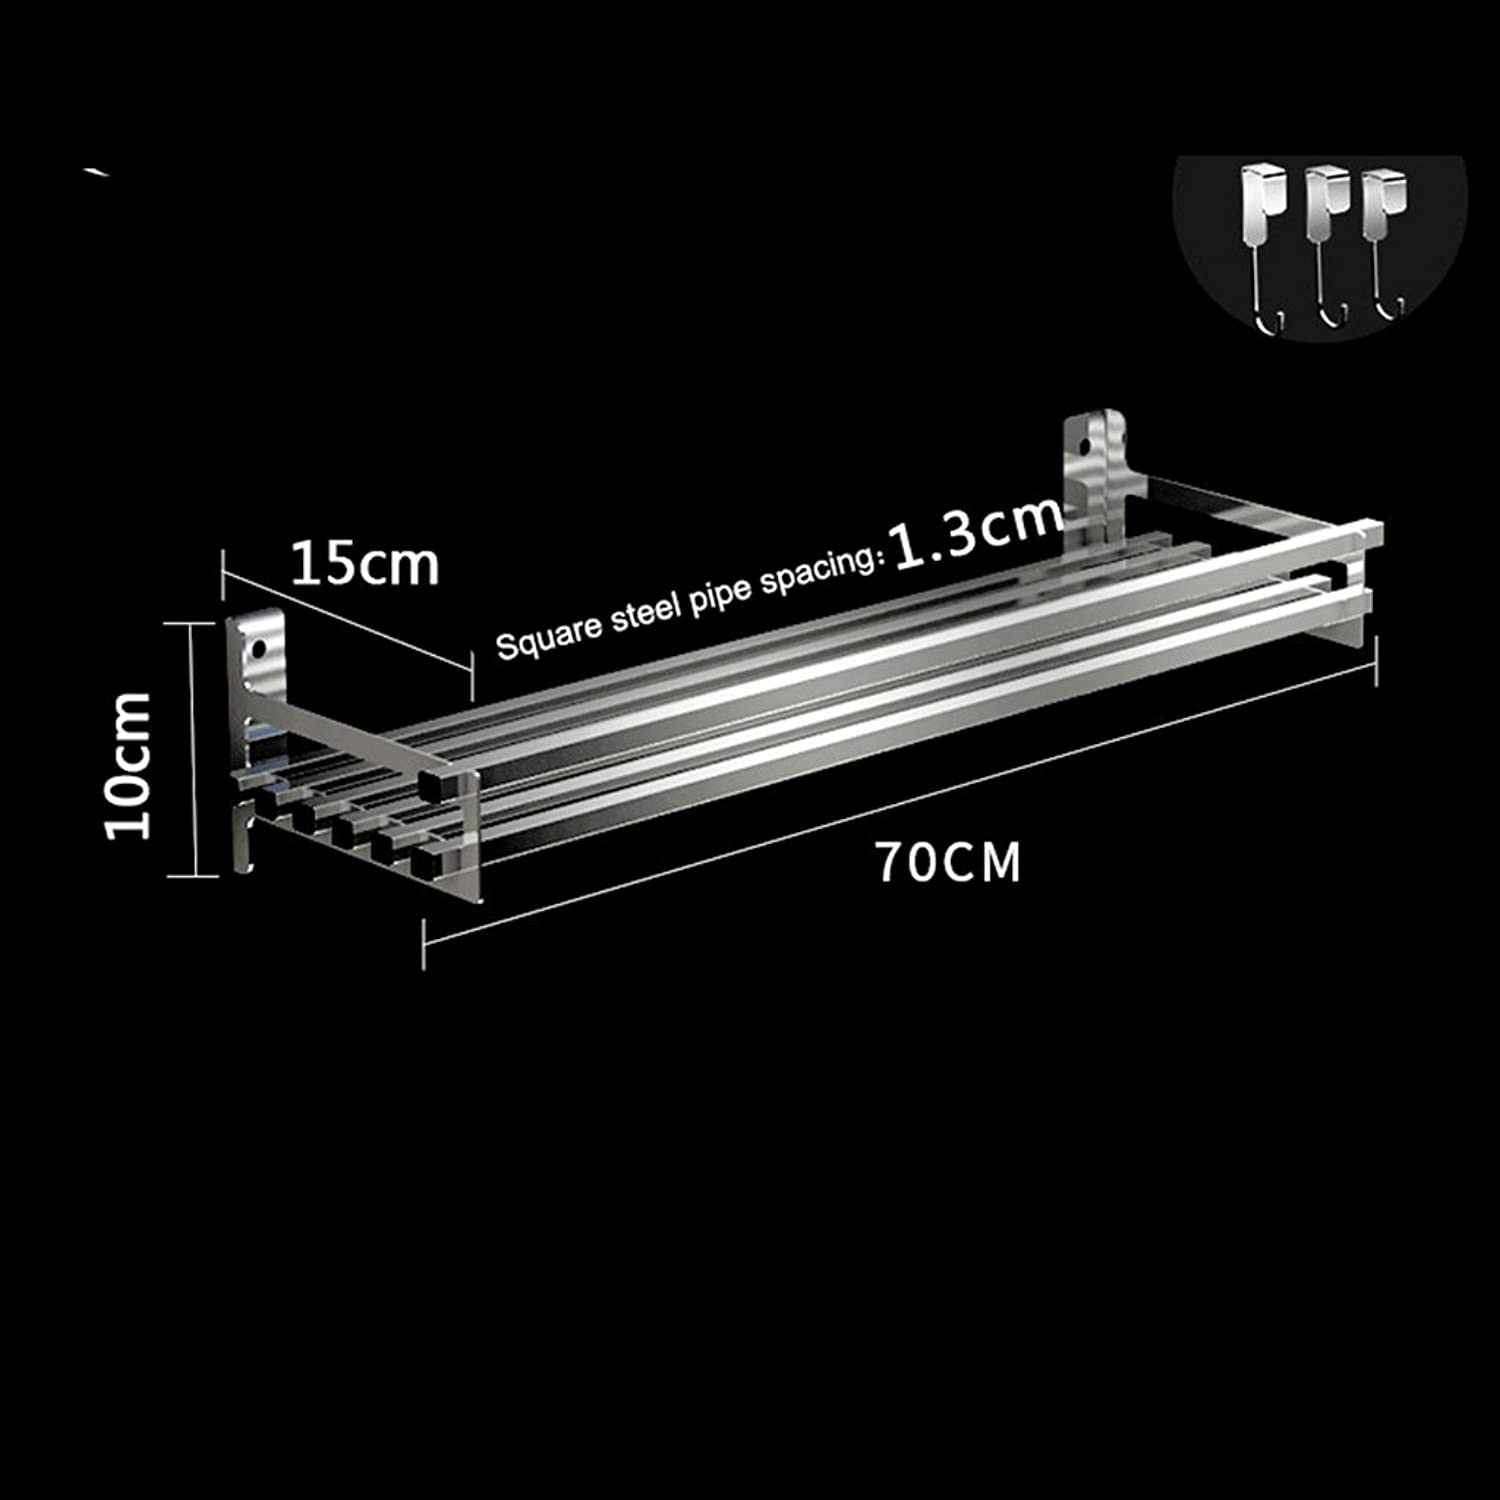 Kitchen Utensils Storage Warehouses 304 Stainless Steel Storage Shelf Wall Shelves with 3 Hooks Shelves -by TIANTA (Size   70CM)